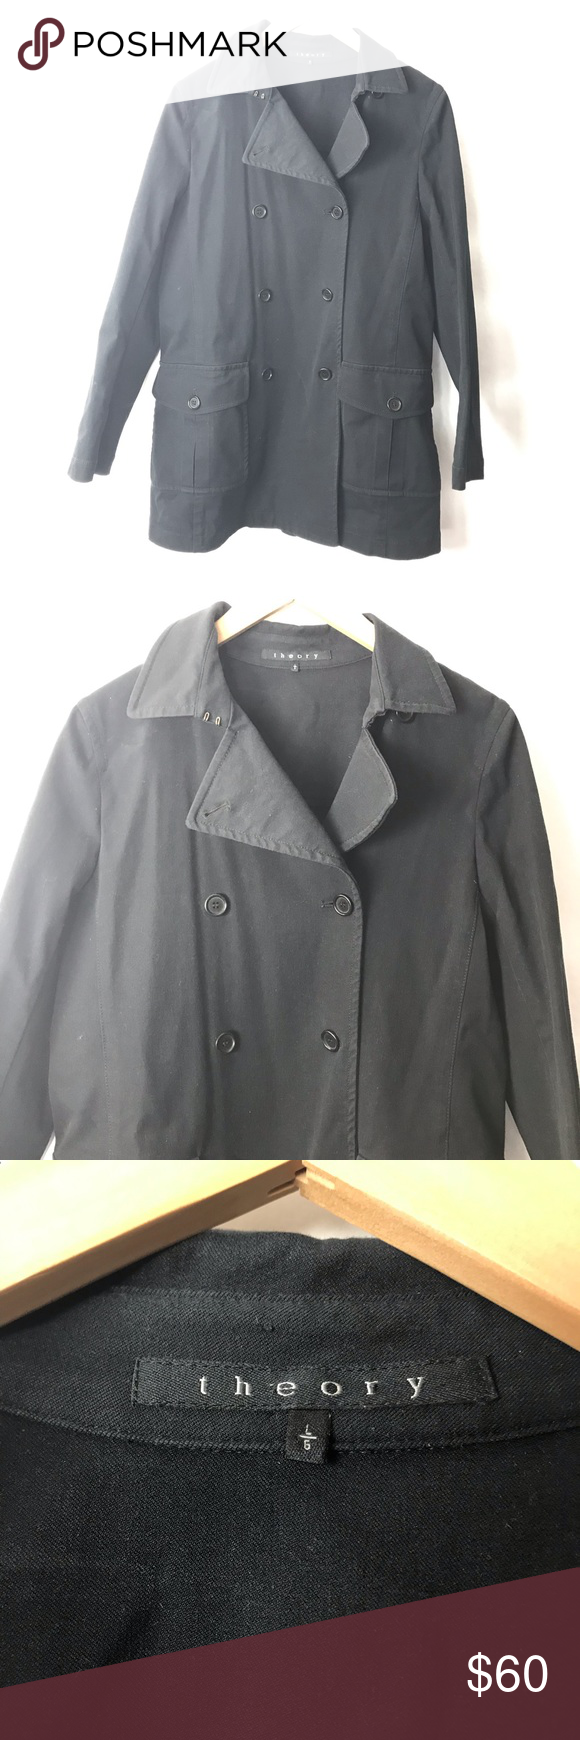 """2c7bb0f3697 Theory trench coat black 10 Theory trench coat Missing belt Button up jacket  Ap to ap 19.5"""" Length 31"""" Gently used Theory Jackets & Coats Trench Coats"""